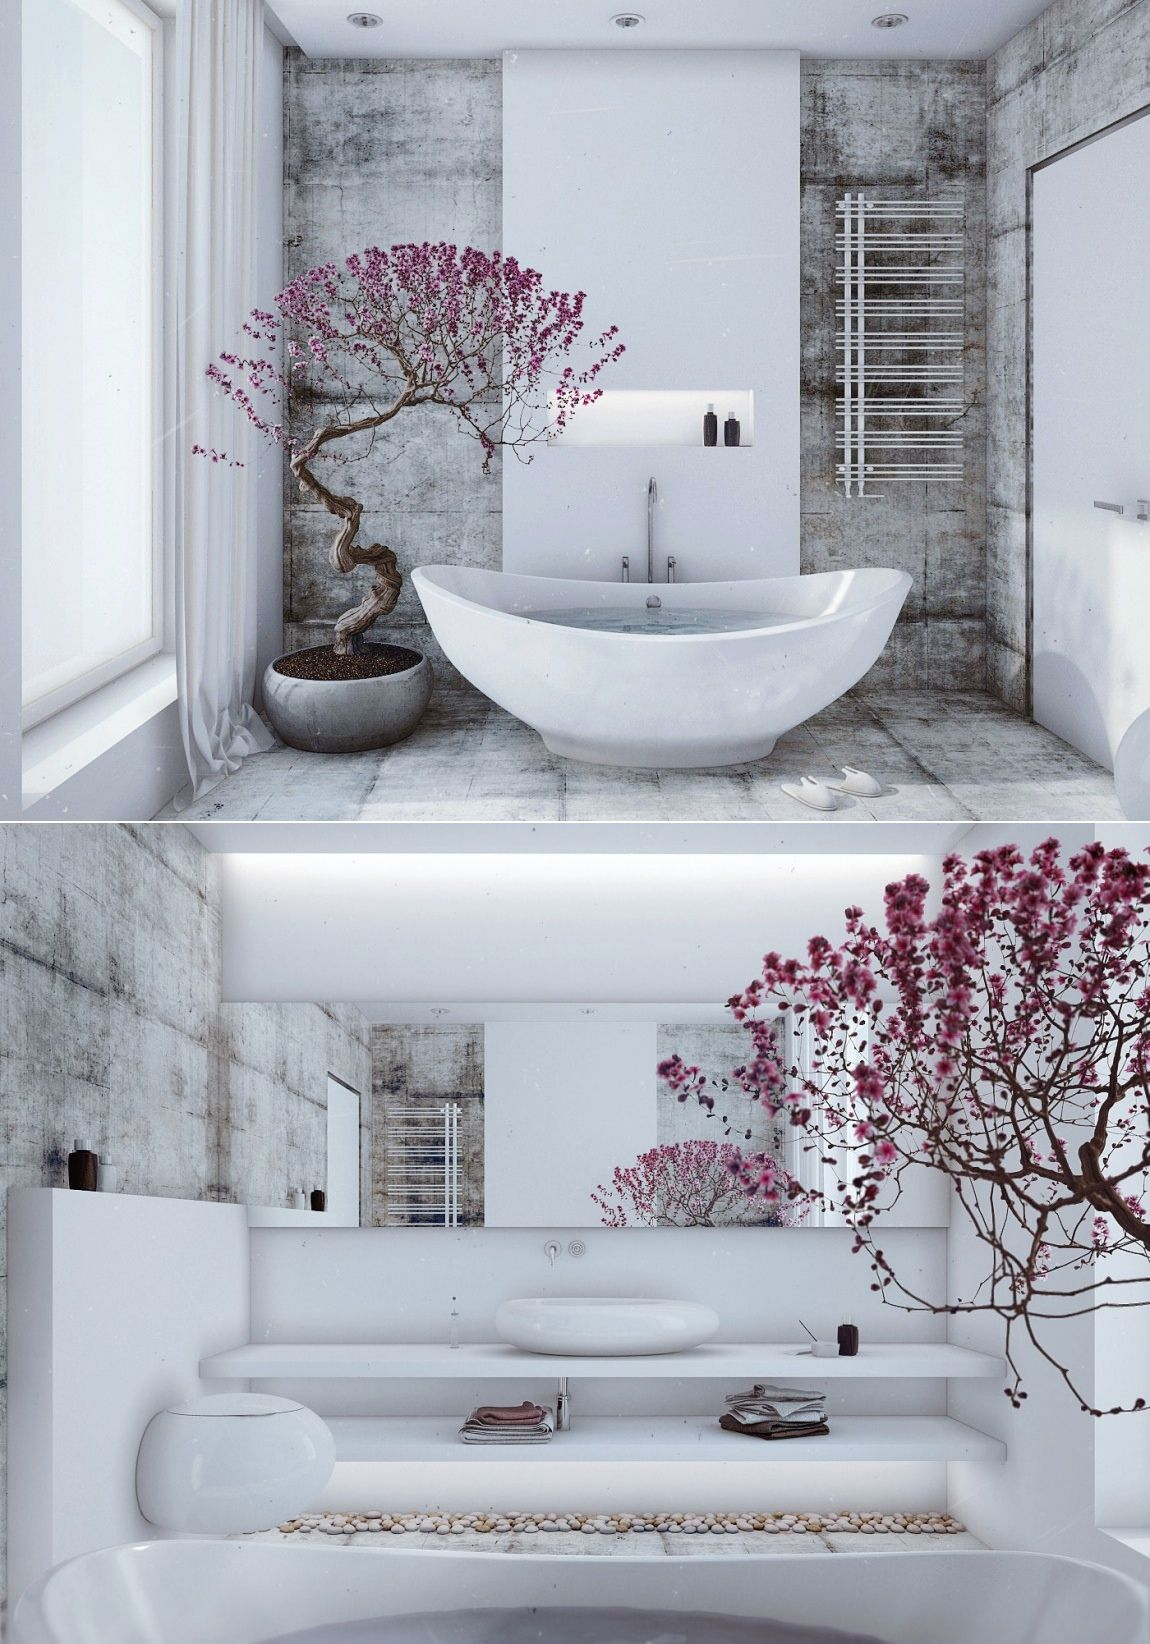 25 Peaceful Zen Bathroom Design Ideas | Zen bathroom design, Zen ...